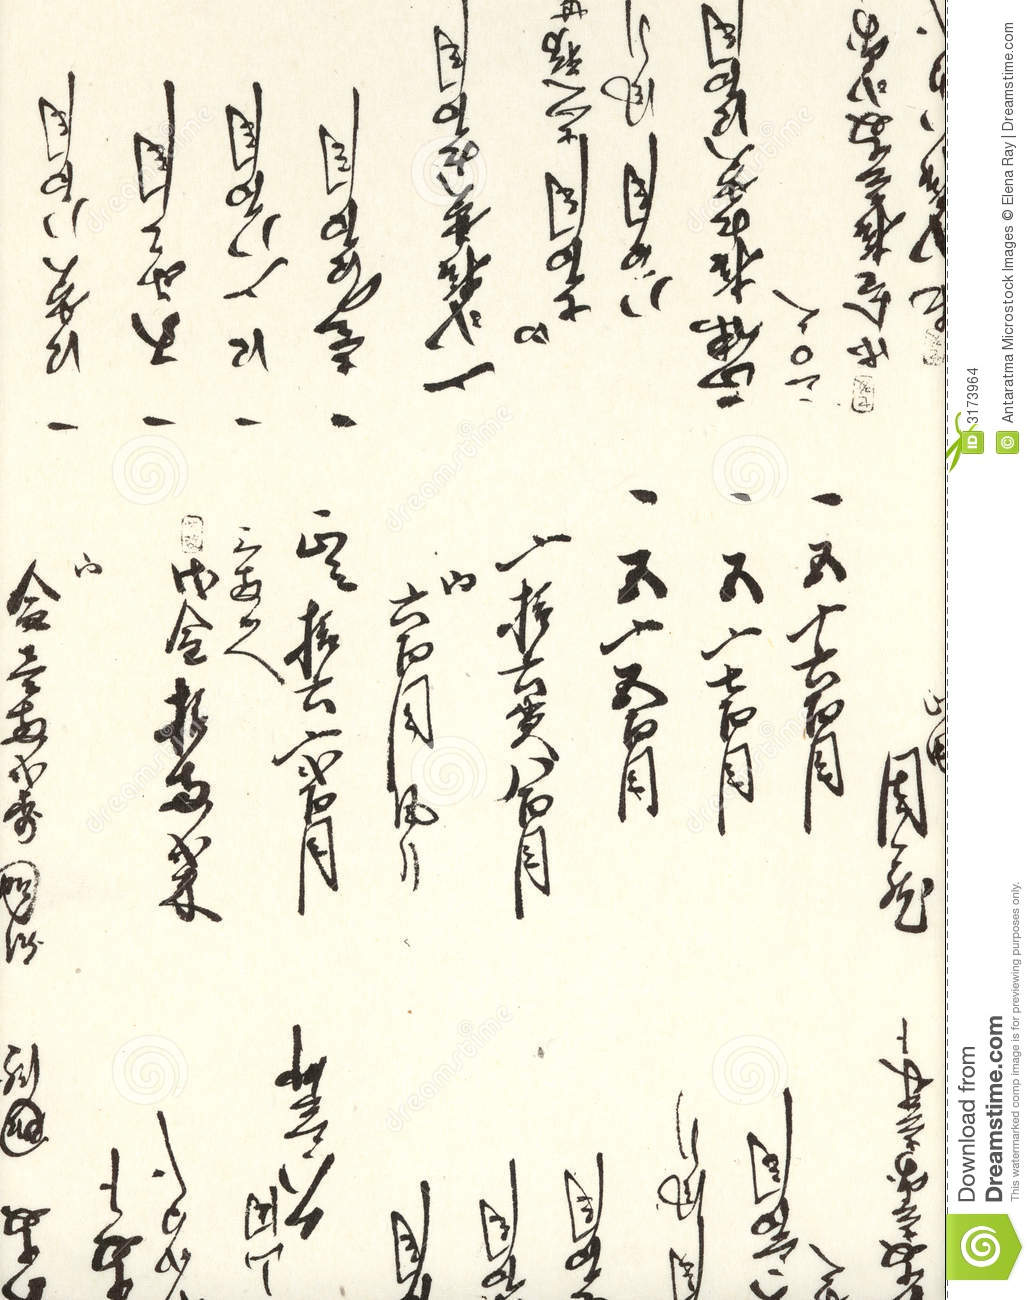 japanese writing for freedom Choose a video to embed